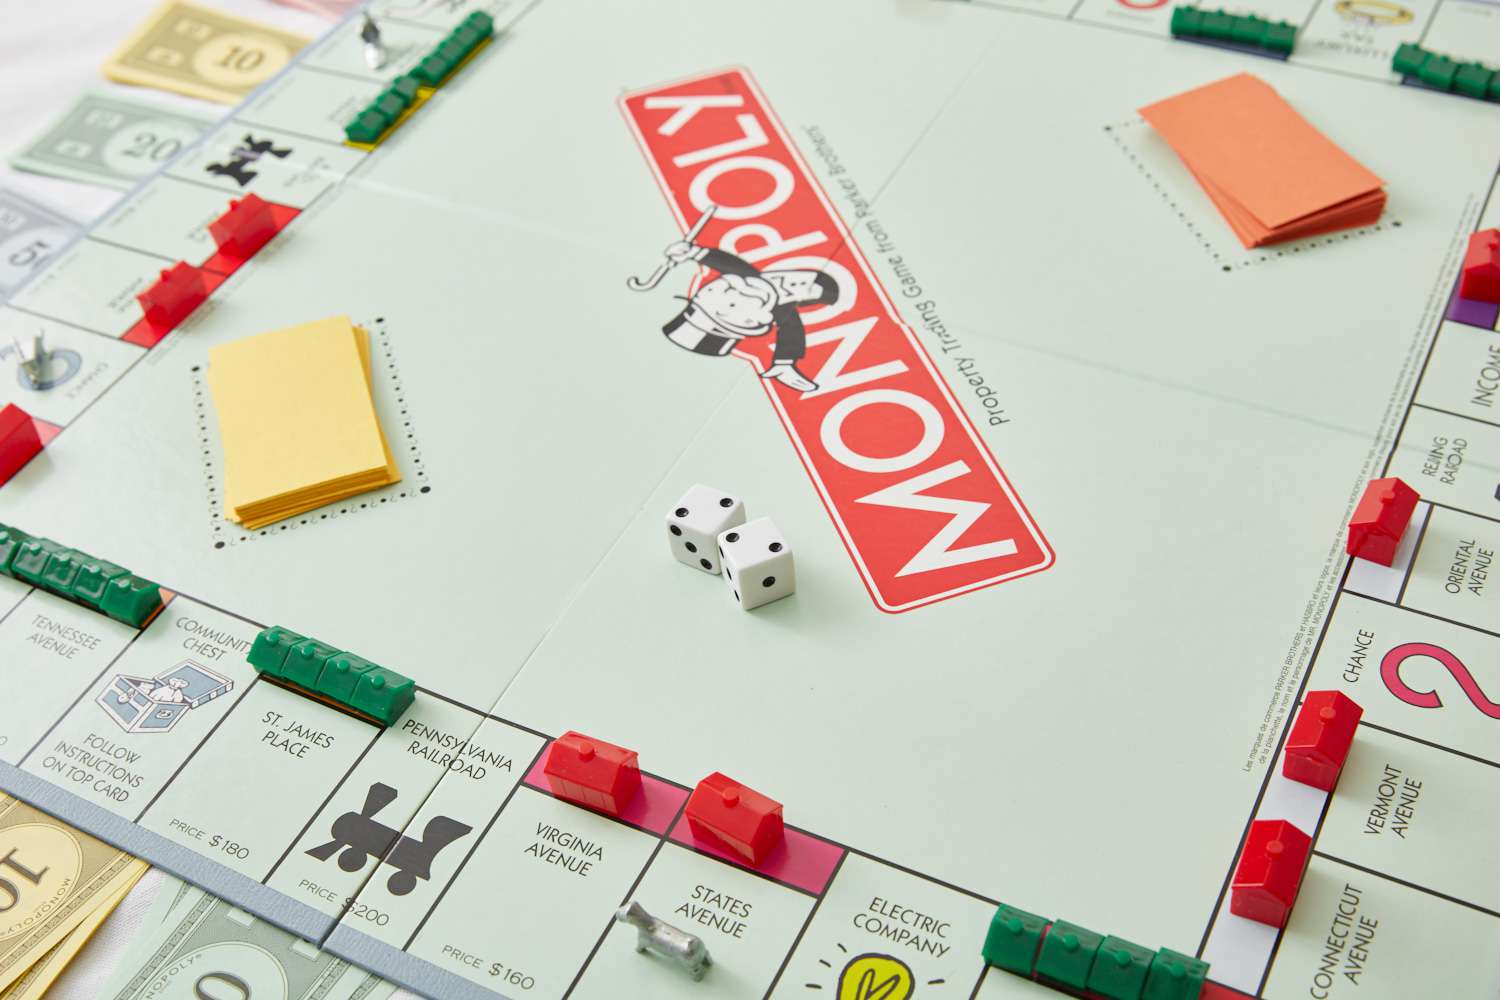 Monopoly house and hotel board pieces